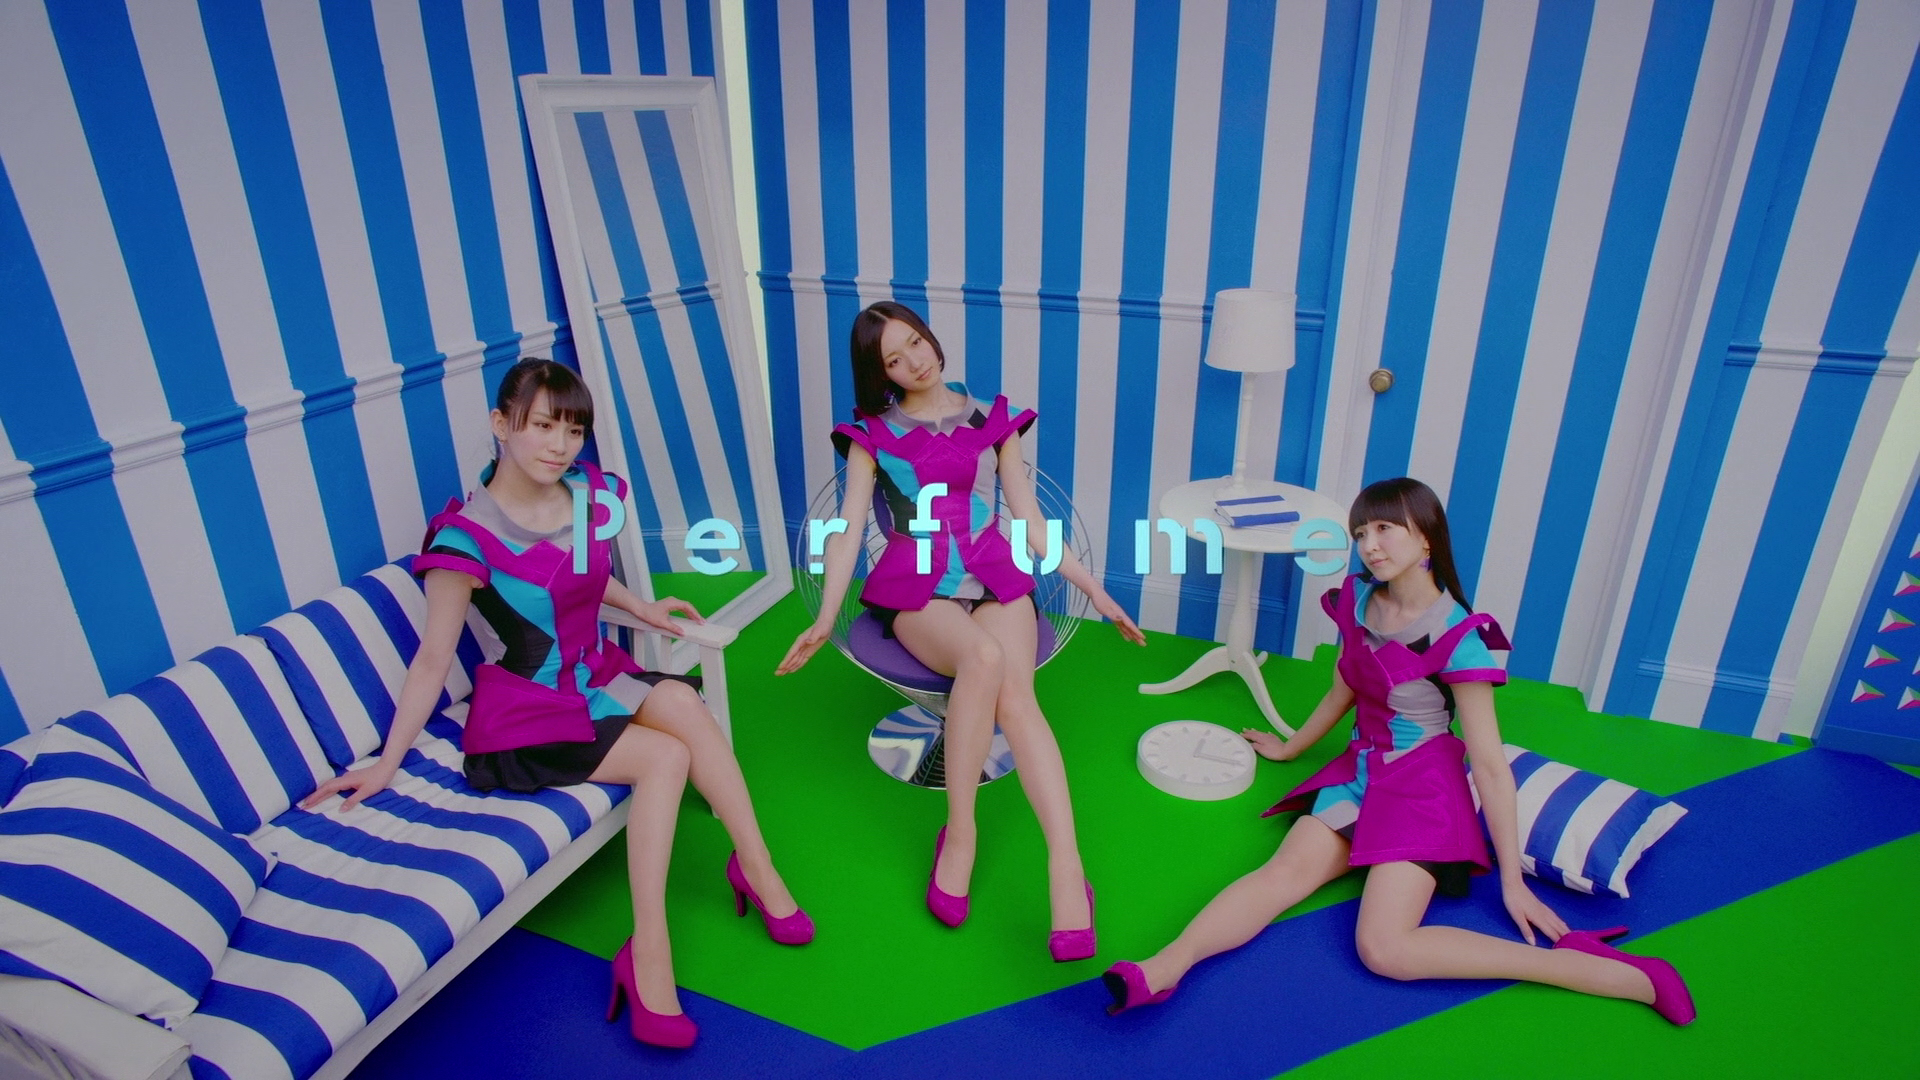 20171205.0144.3 Perfume - Clips 2 (Limited edition) (Blu-Ray.iso) screen 2 (JPOP.ru).png